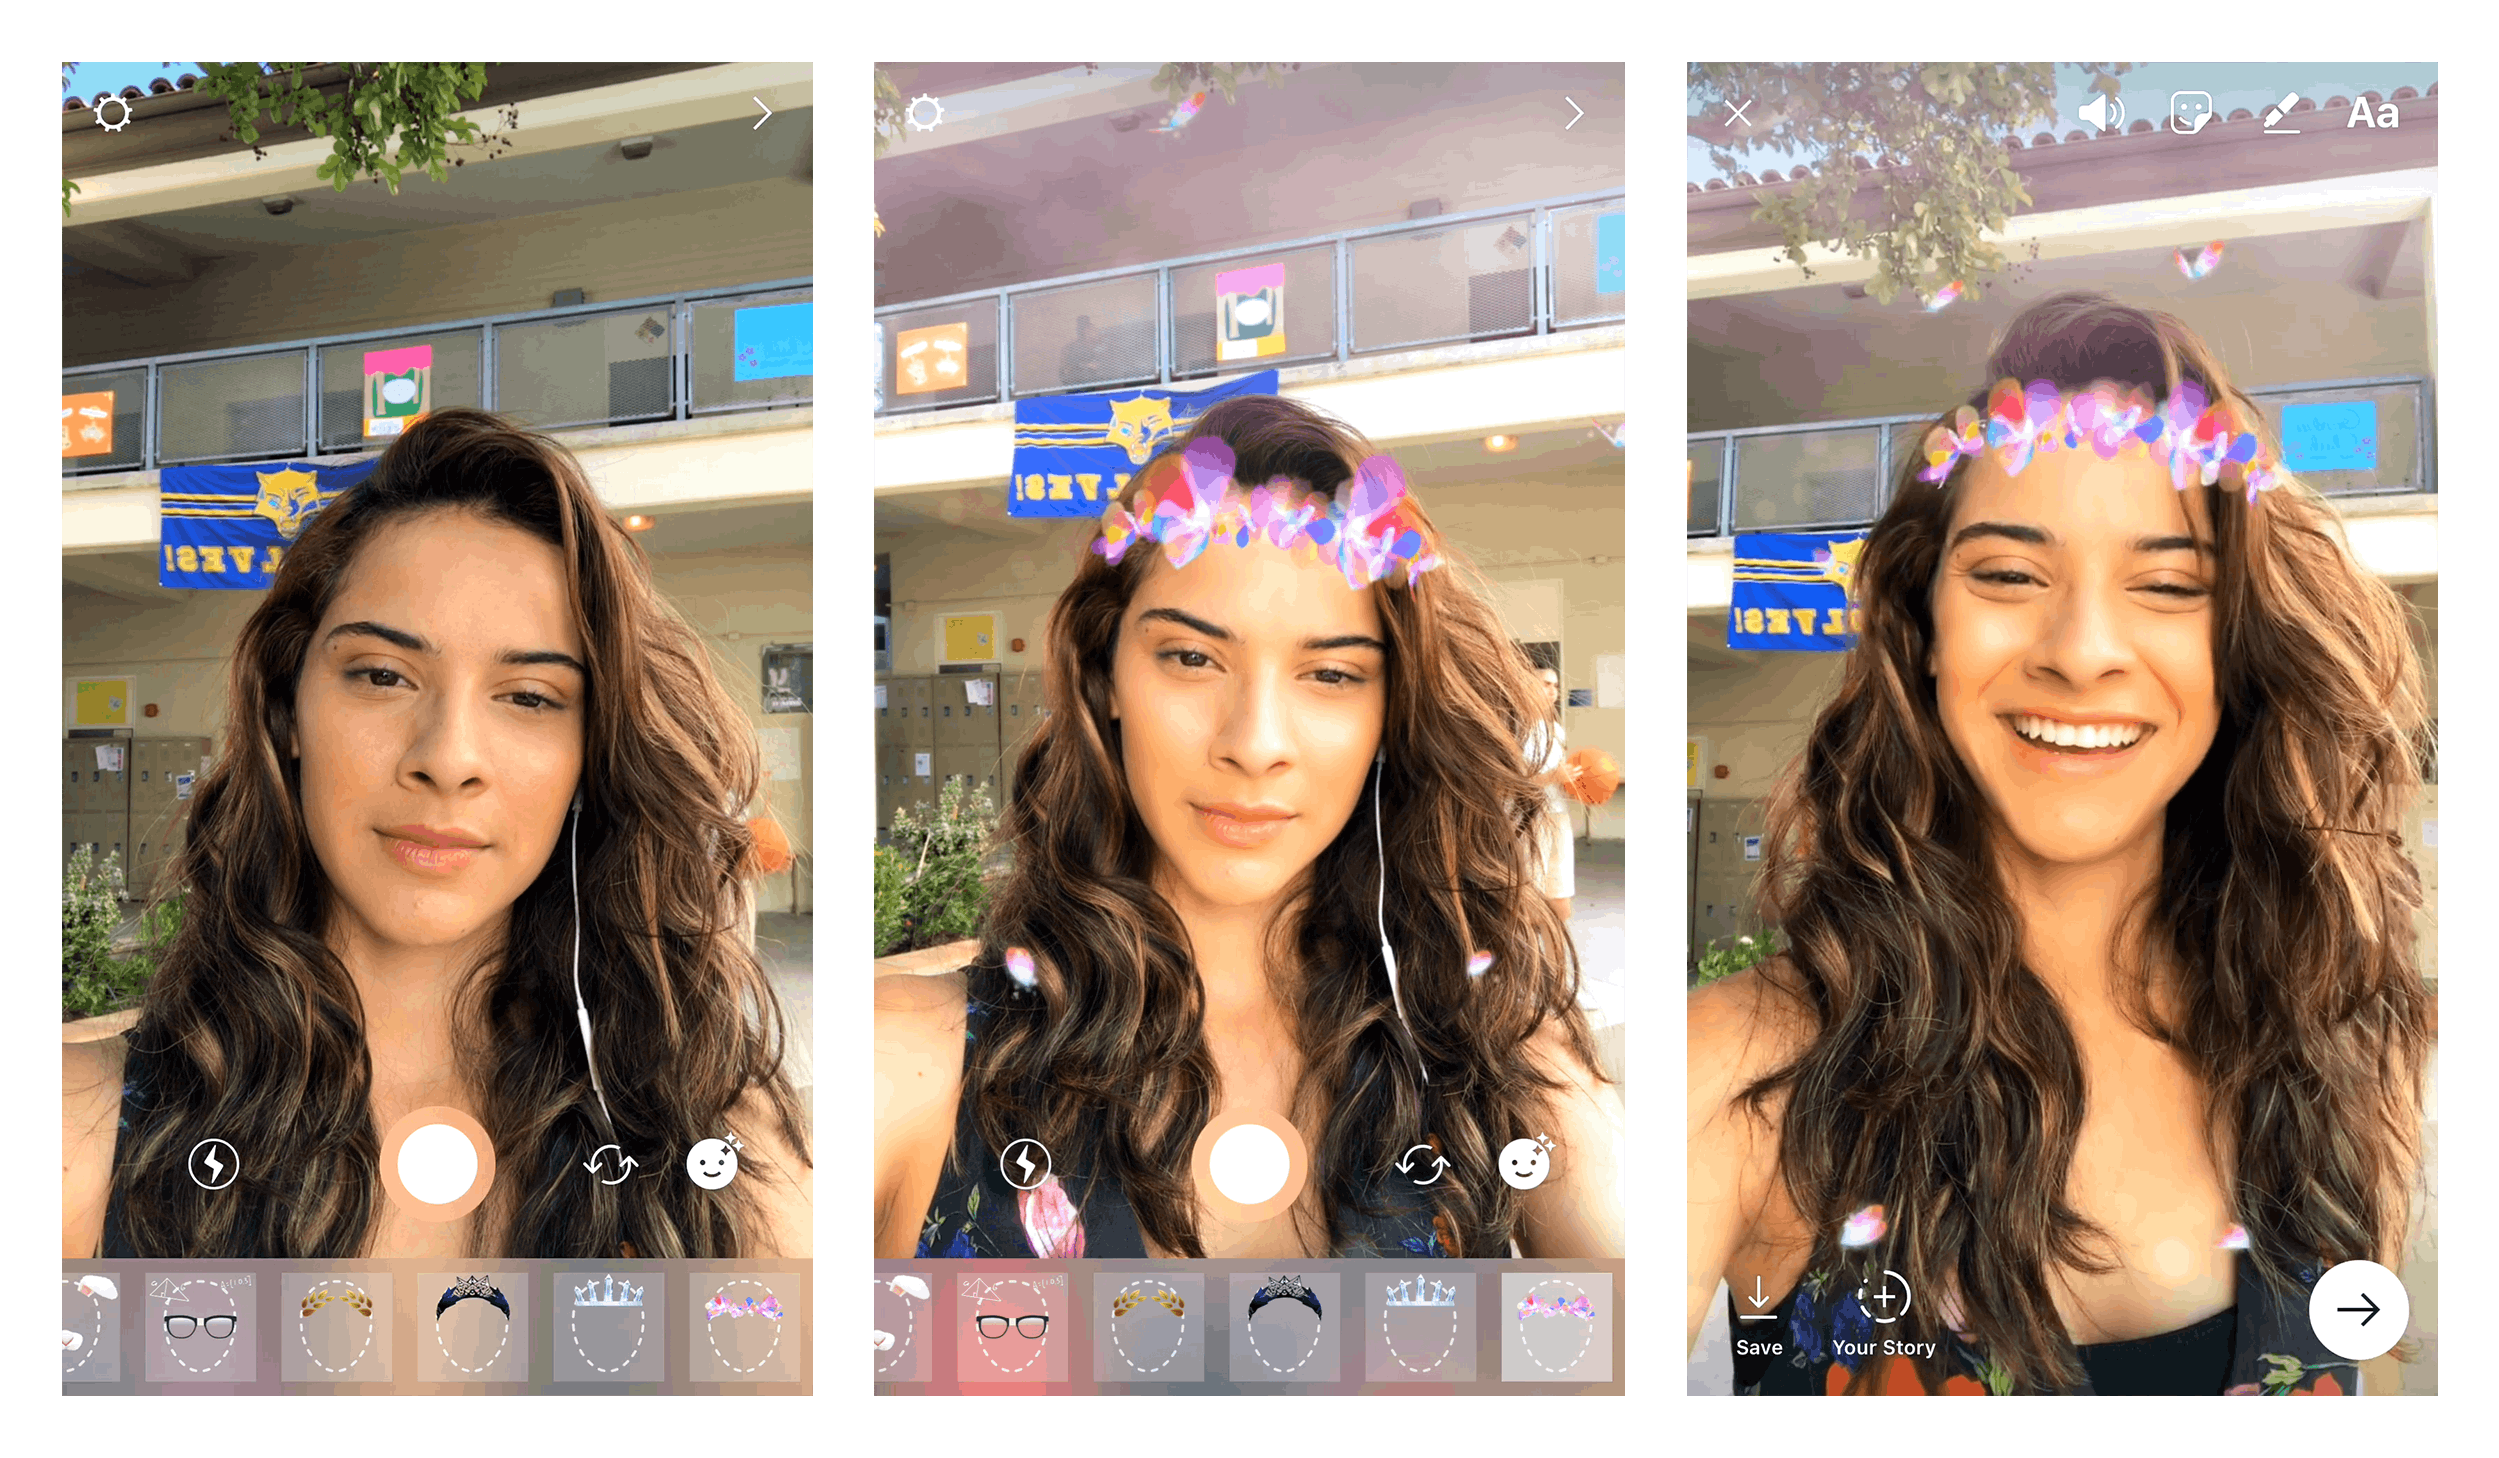 Instagram Rolls Out Face Filters, Admits a War on Snapchat